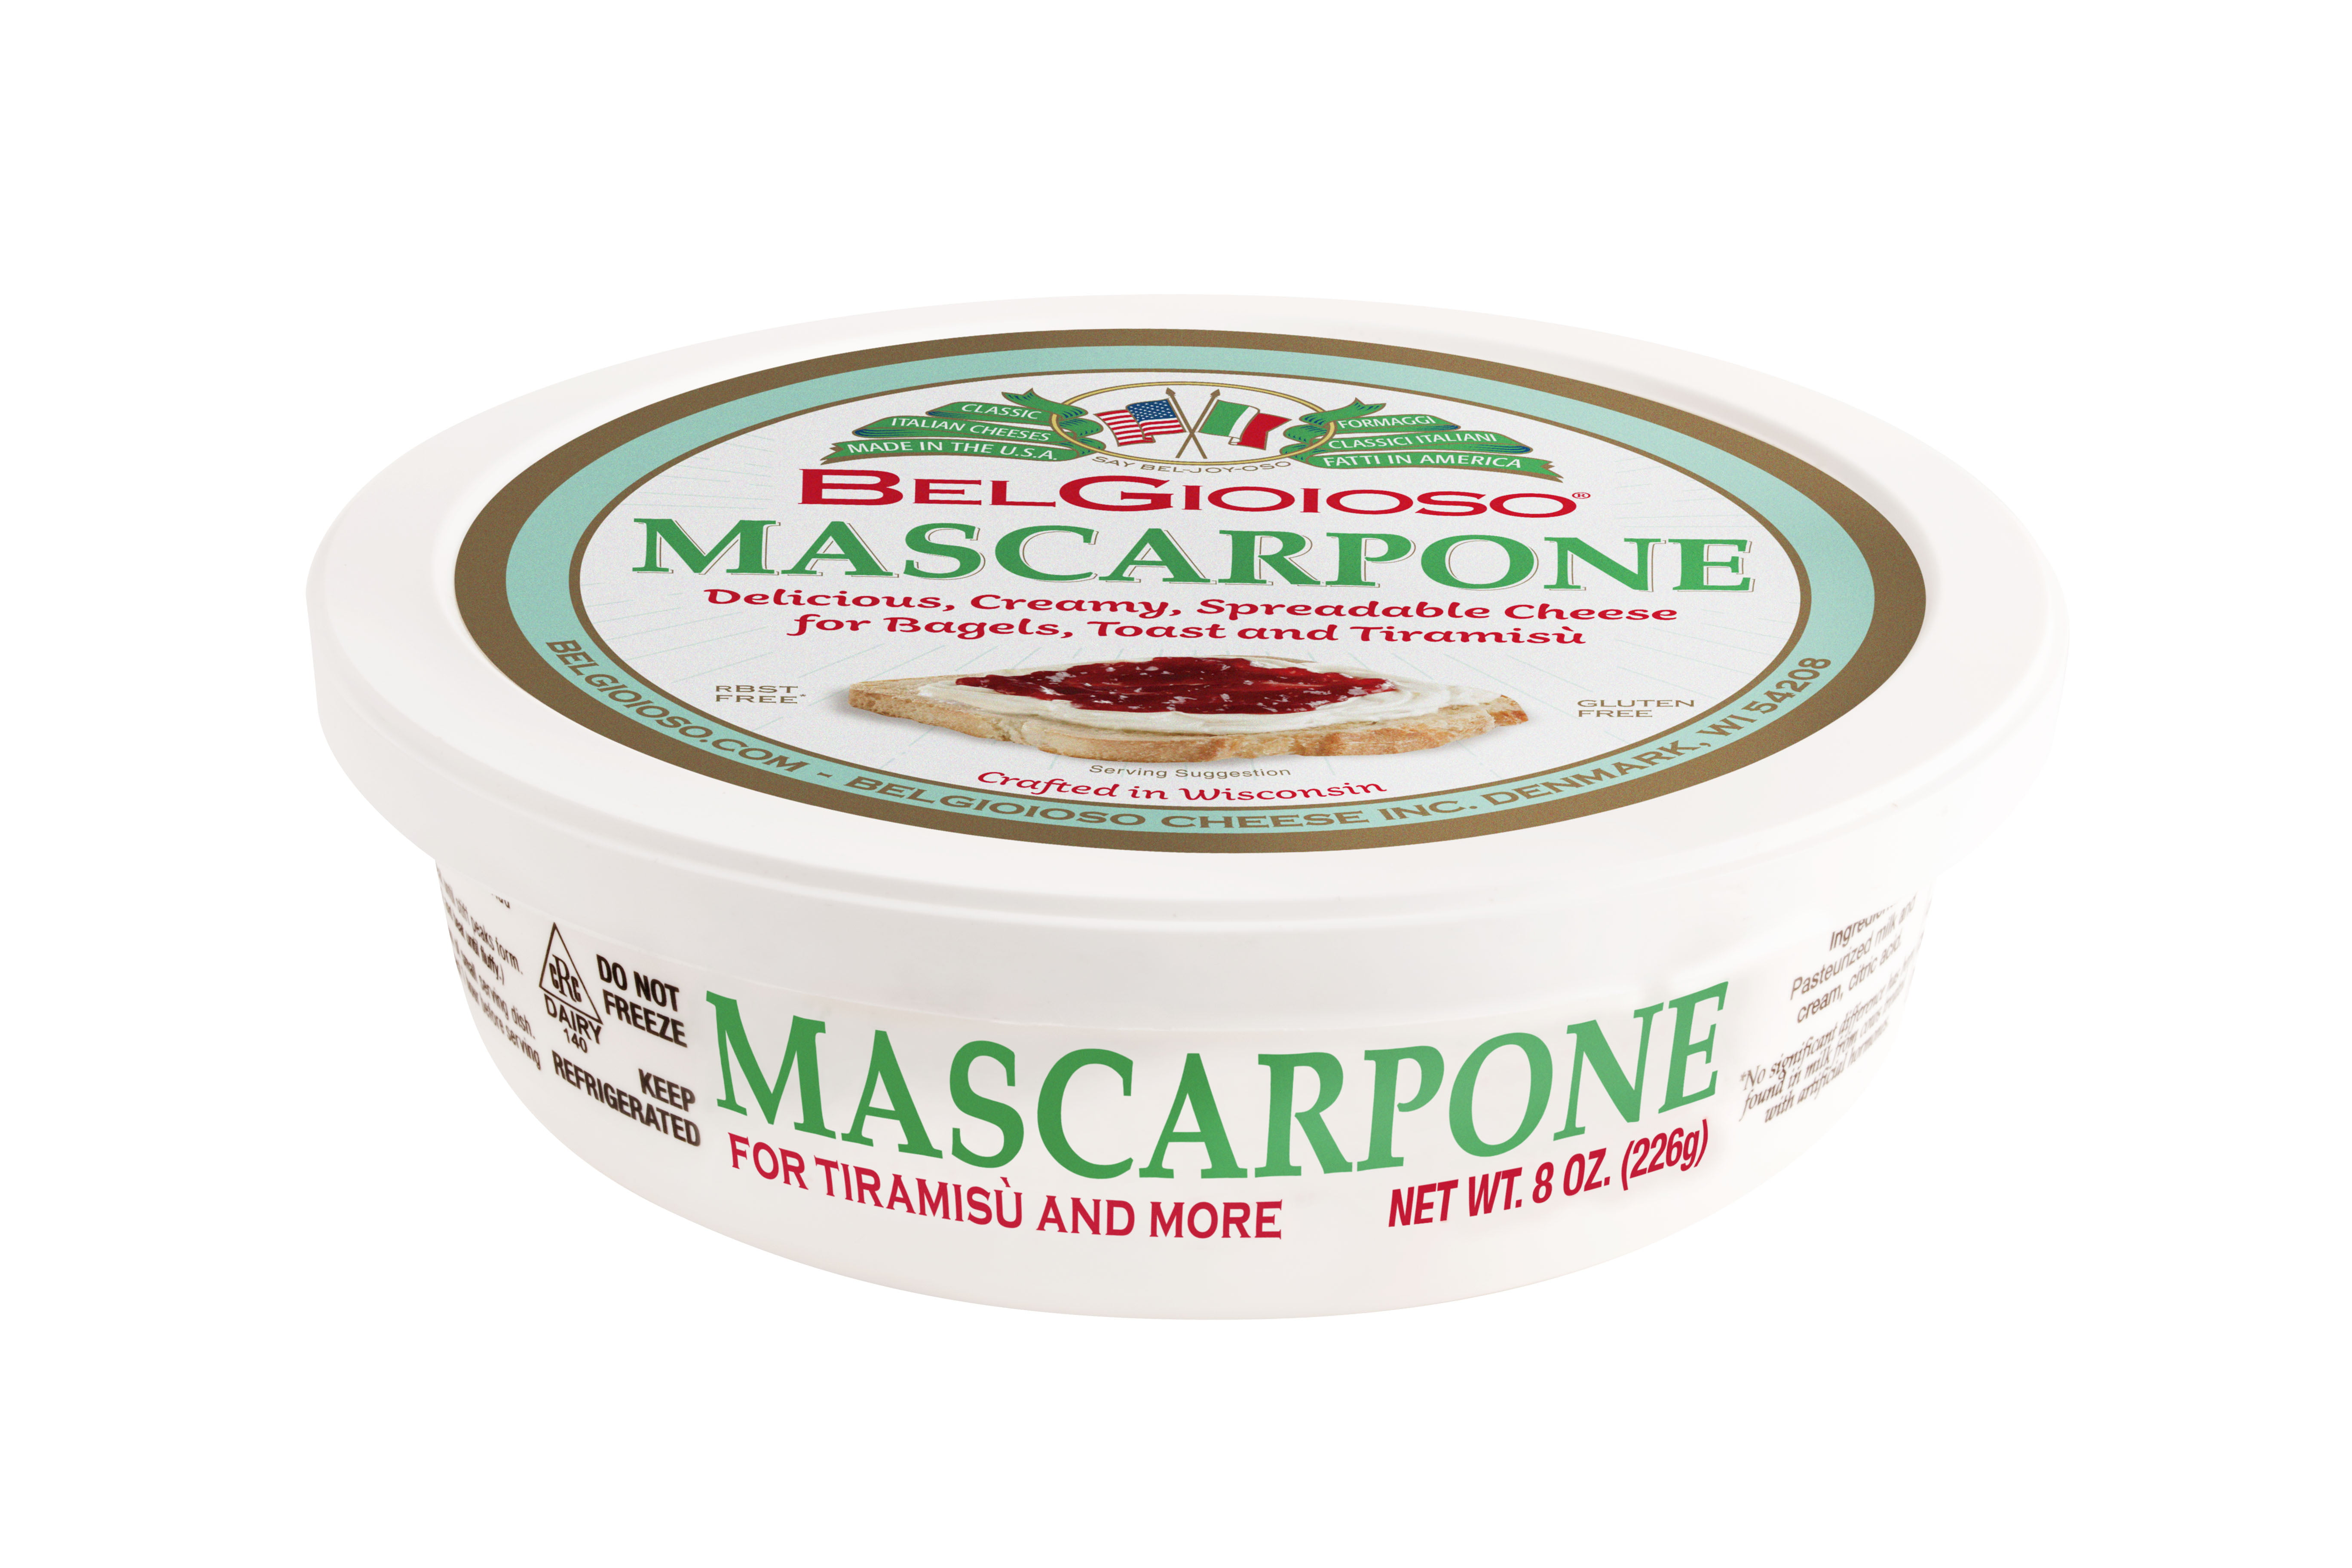 BelGioioso Mascarpone Cheese, 8 oz Cup, Spreadable Cheese - Walmart.com